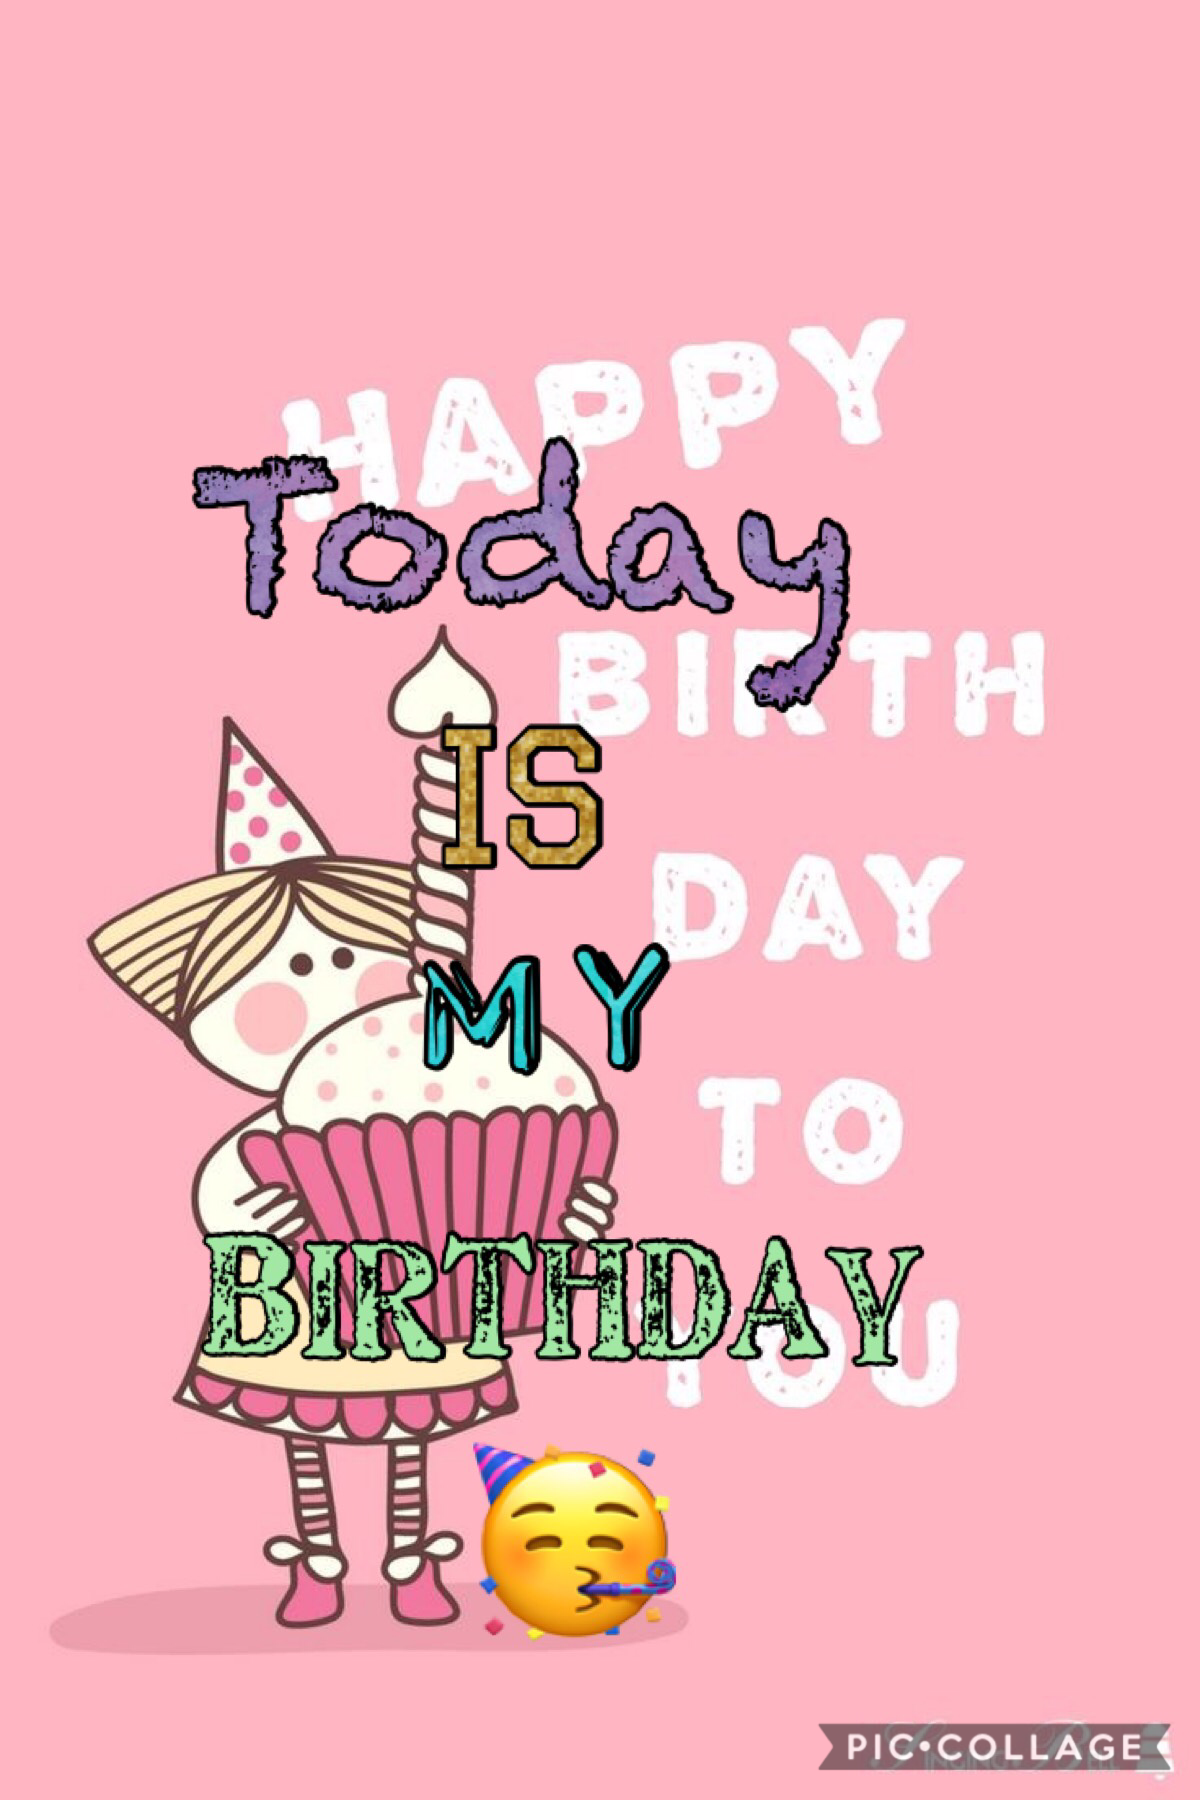 Today Is my birthday🥳🎉🎂🧁🎈